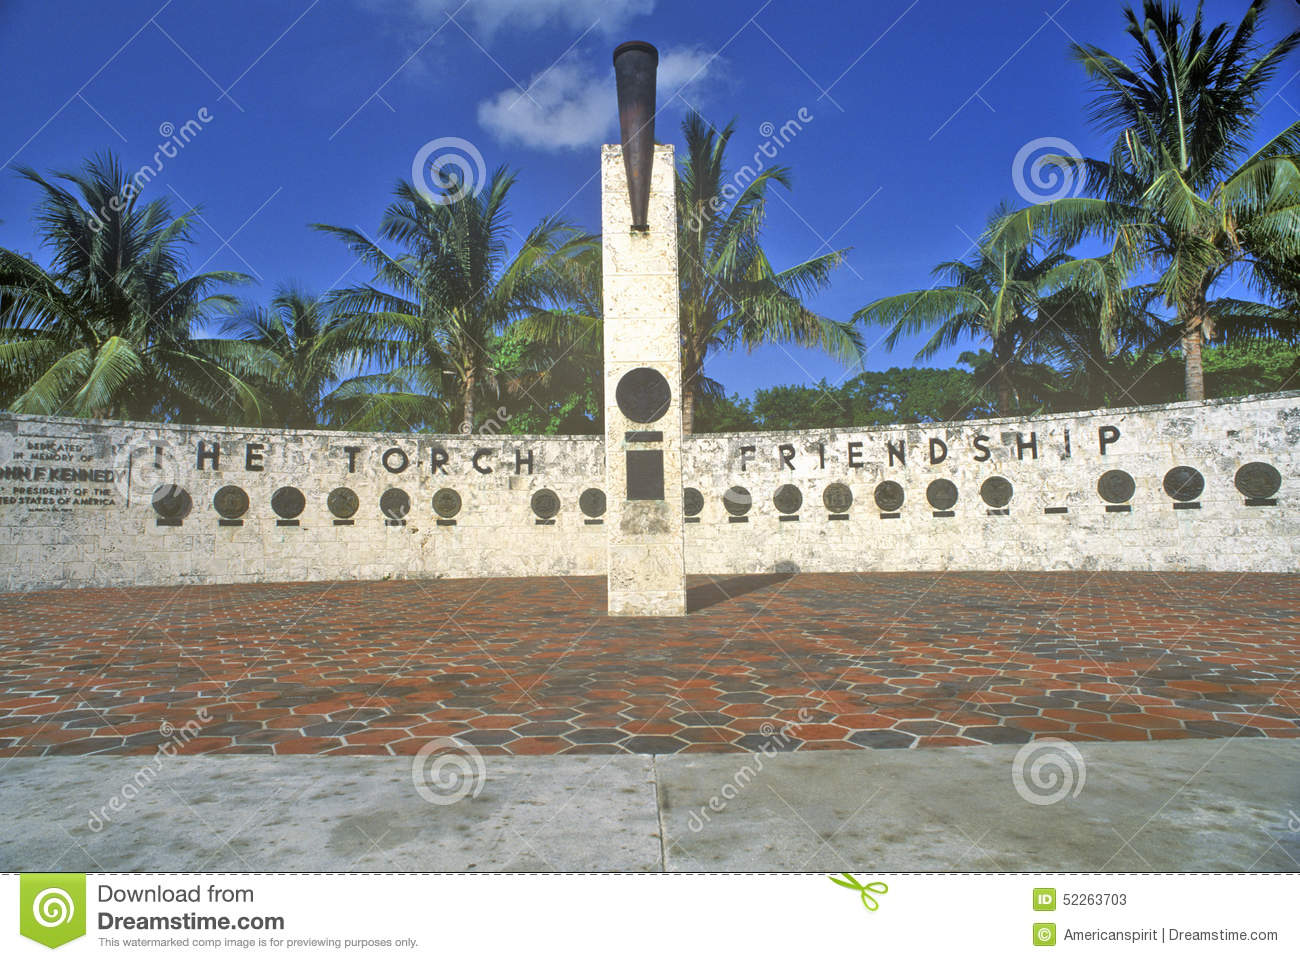 The Torch of Friendship at Bayside Park, Miami, Florida